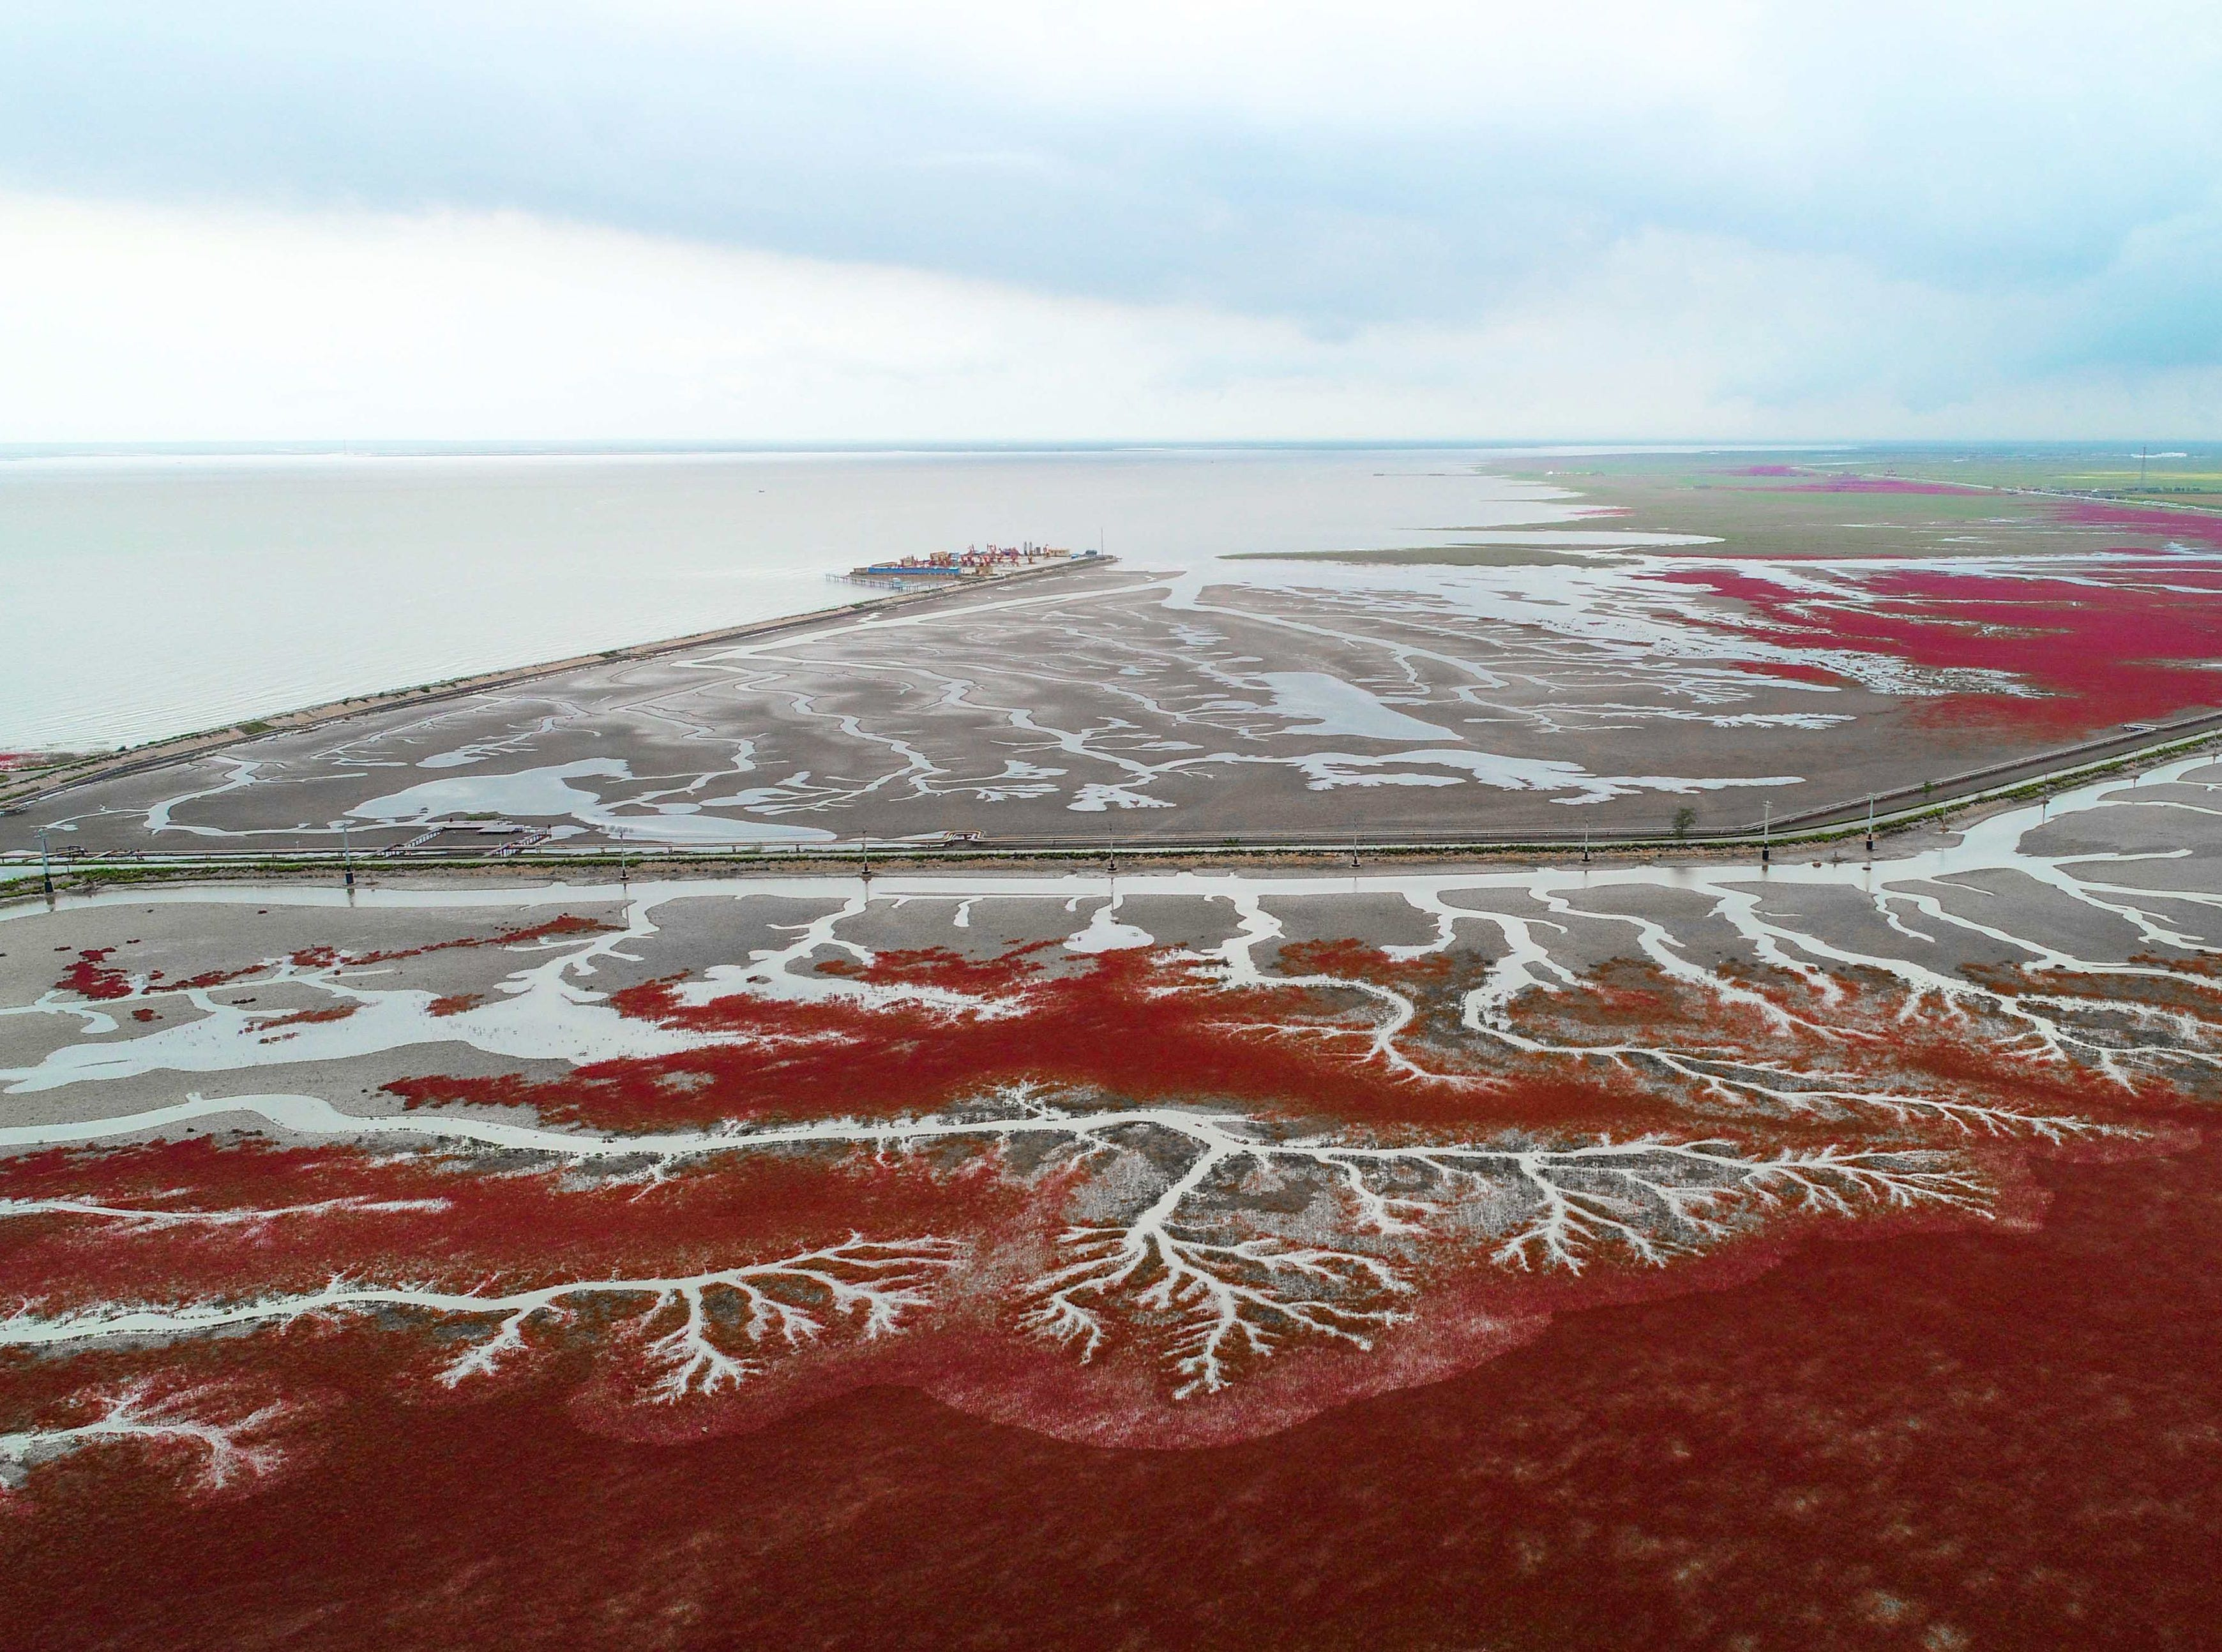 The Red Beach in Panjin in China's northeastern Liaoning province. The beach gets its name from its appearance, which is caused by a type of sea weed that flourishes in the saline-alkali soil.